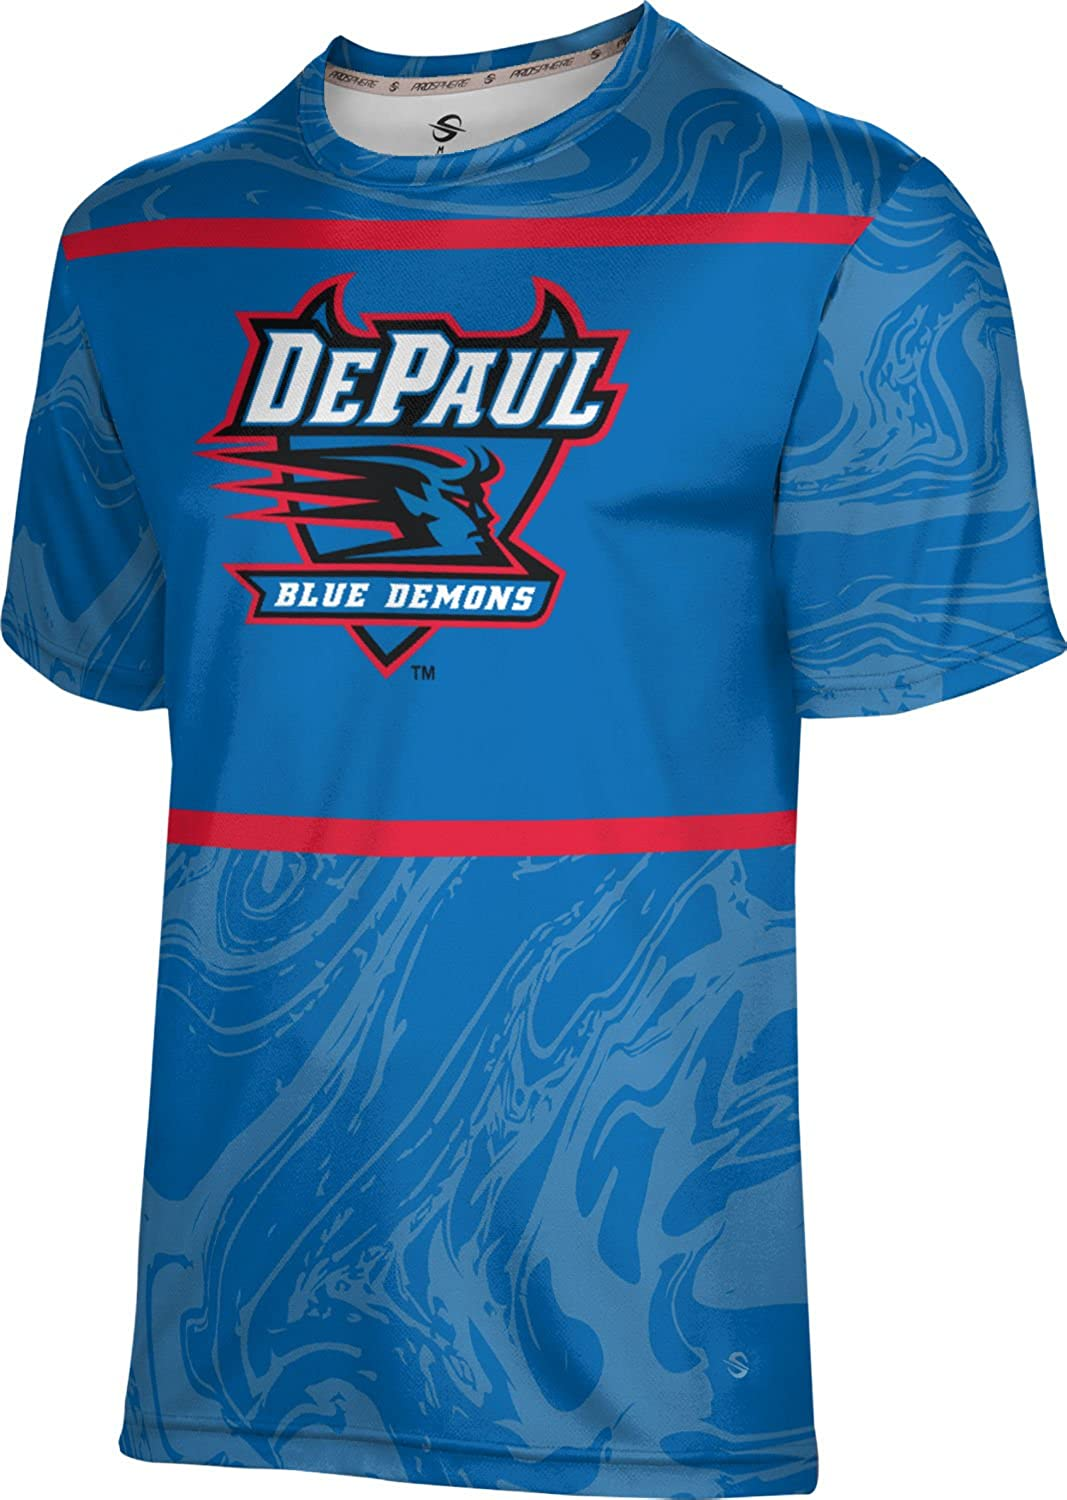 ProSphere DePaul University Mens Performance T-Shirt Ripple